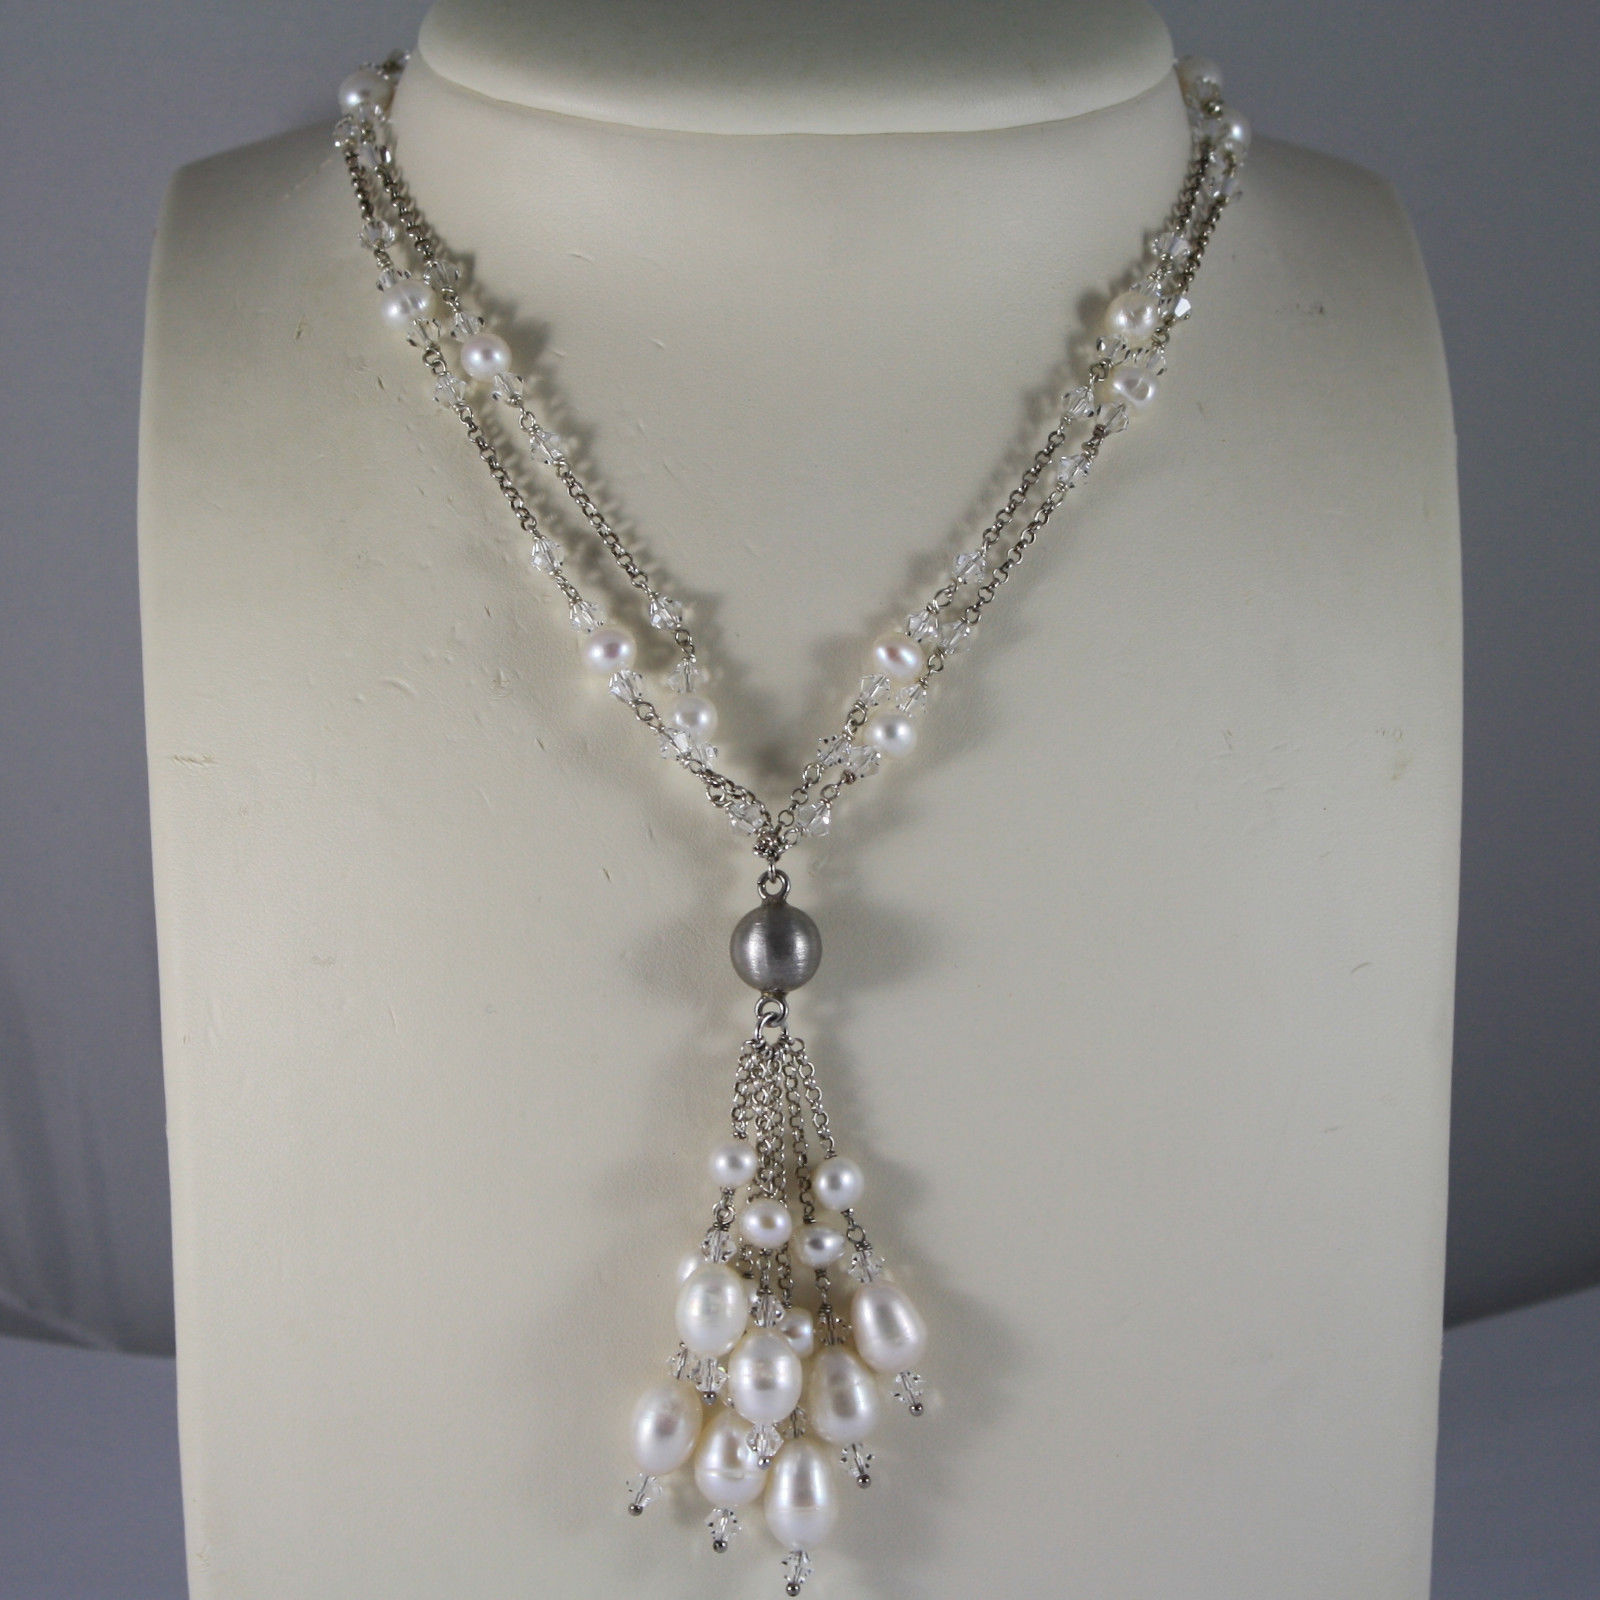 .925 RHODIUM SILVER MULTI STRAND NECKLACE WITH TRANSPARENT CRYSTALS AND PEARLS